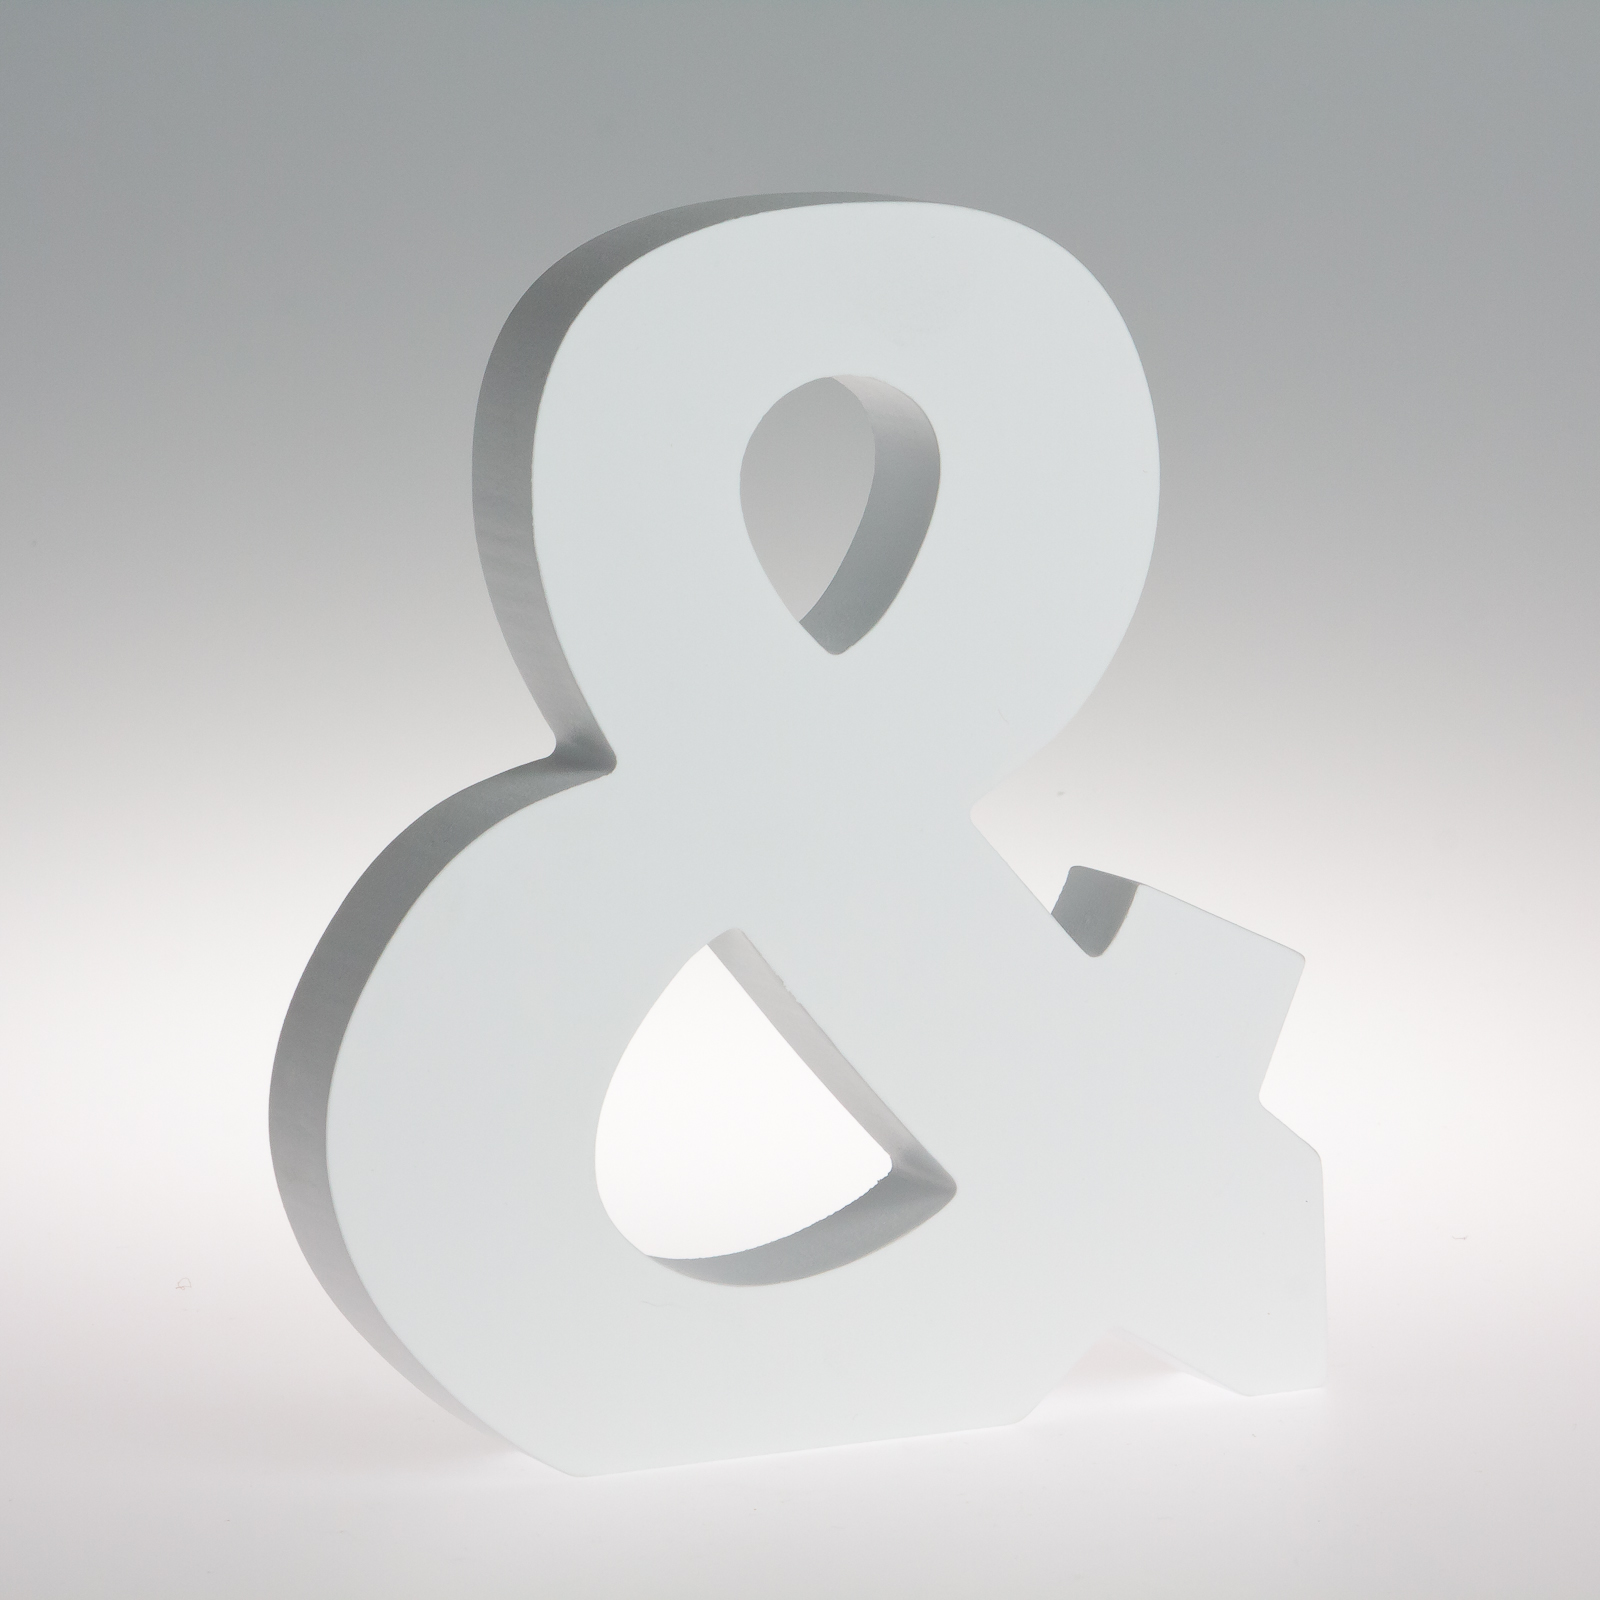 18cm - White Wooden Letters by Splosh / Peace & Thyme-396